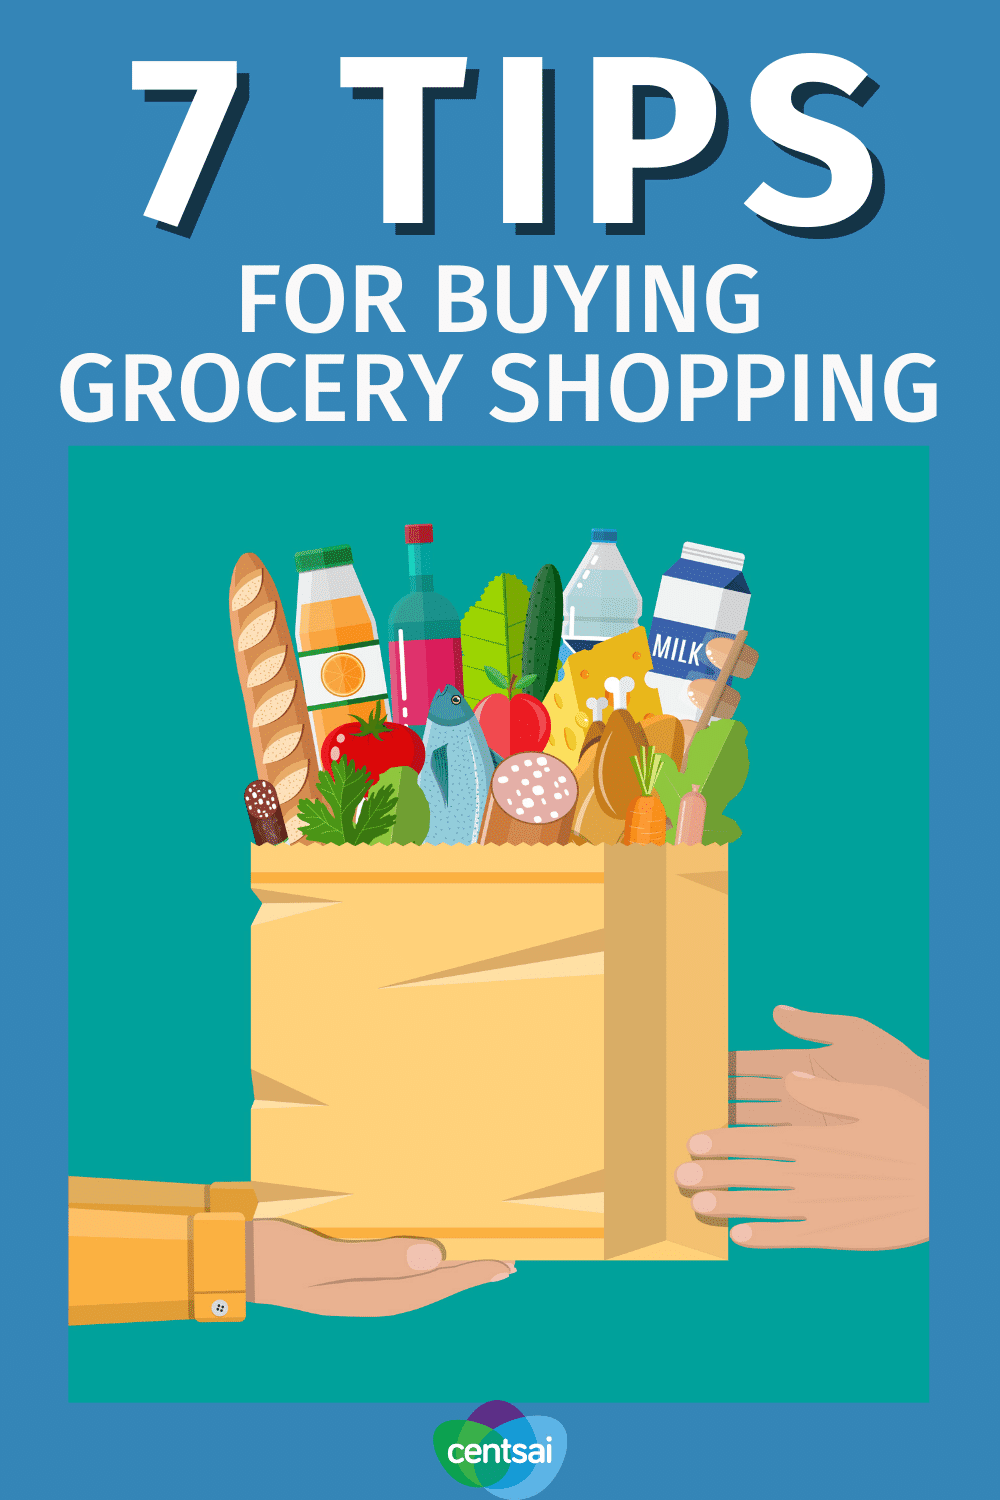 7 tips for buying grocery shopping